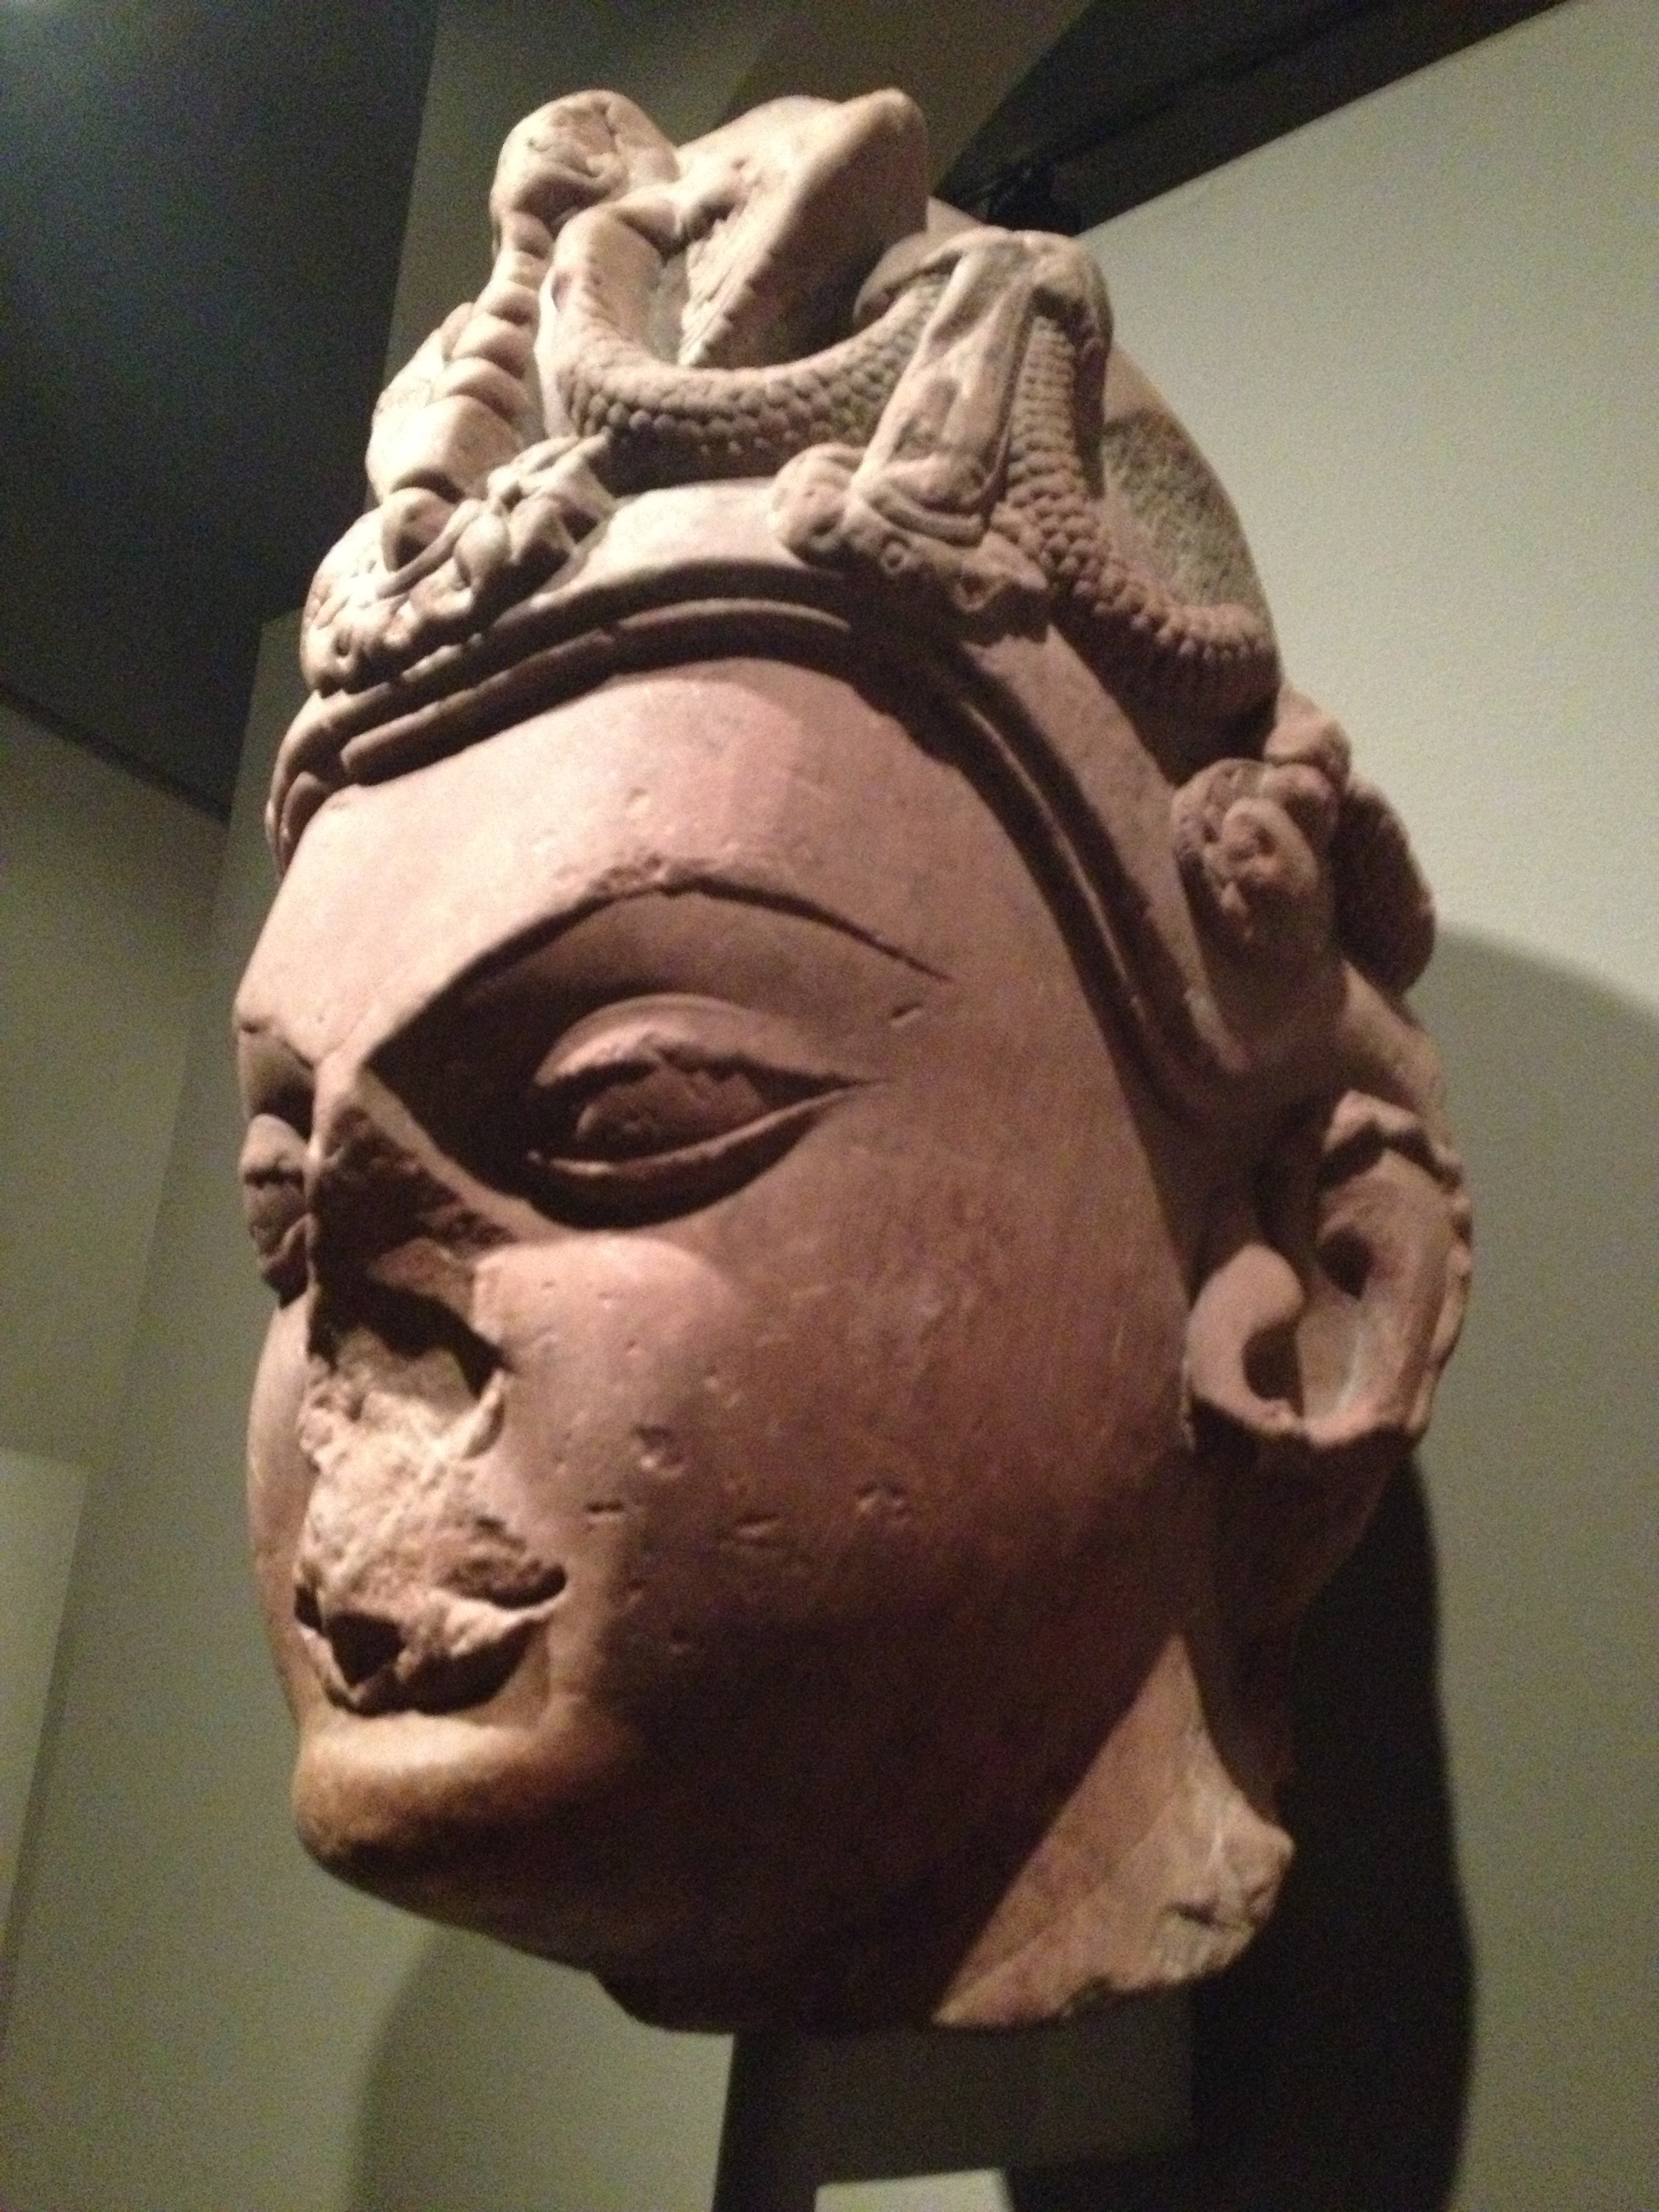 Part of a sculpture found in the room of ancient Asian art at the Nelson-Atkins museum.